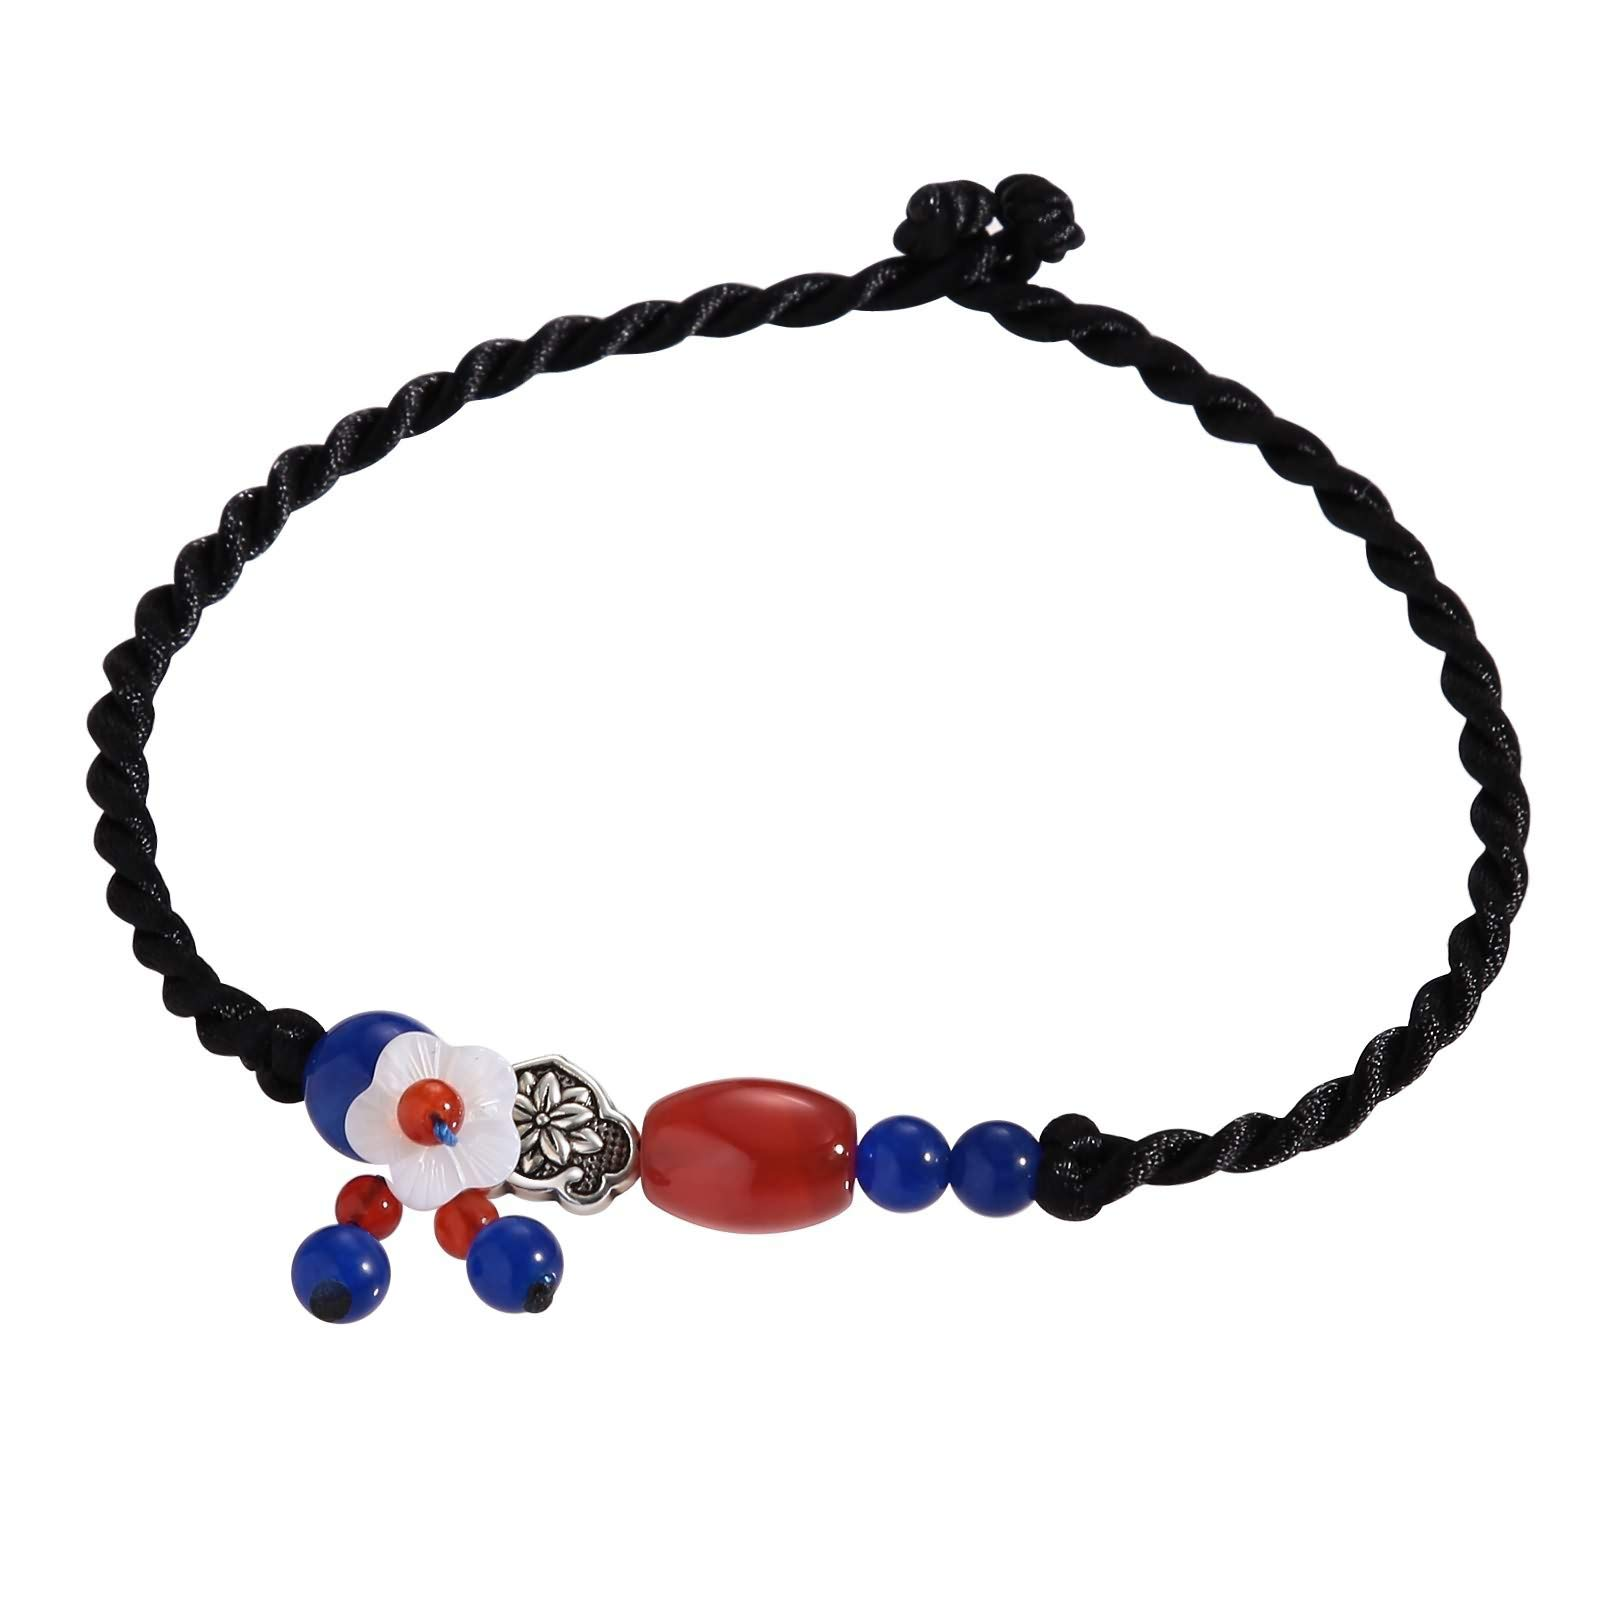 Beydodo Anklets with Colored Stones Foot Bracelet Colorful Braided Rope with Beads and Flower Charms